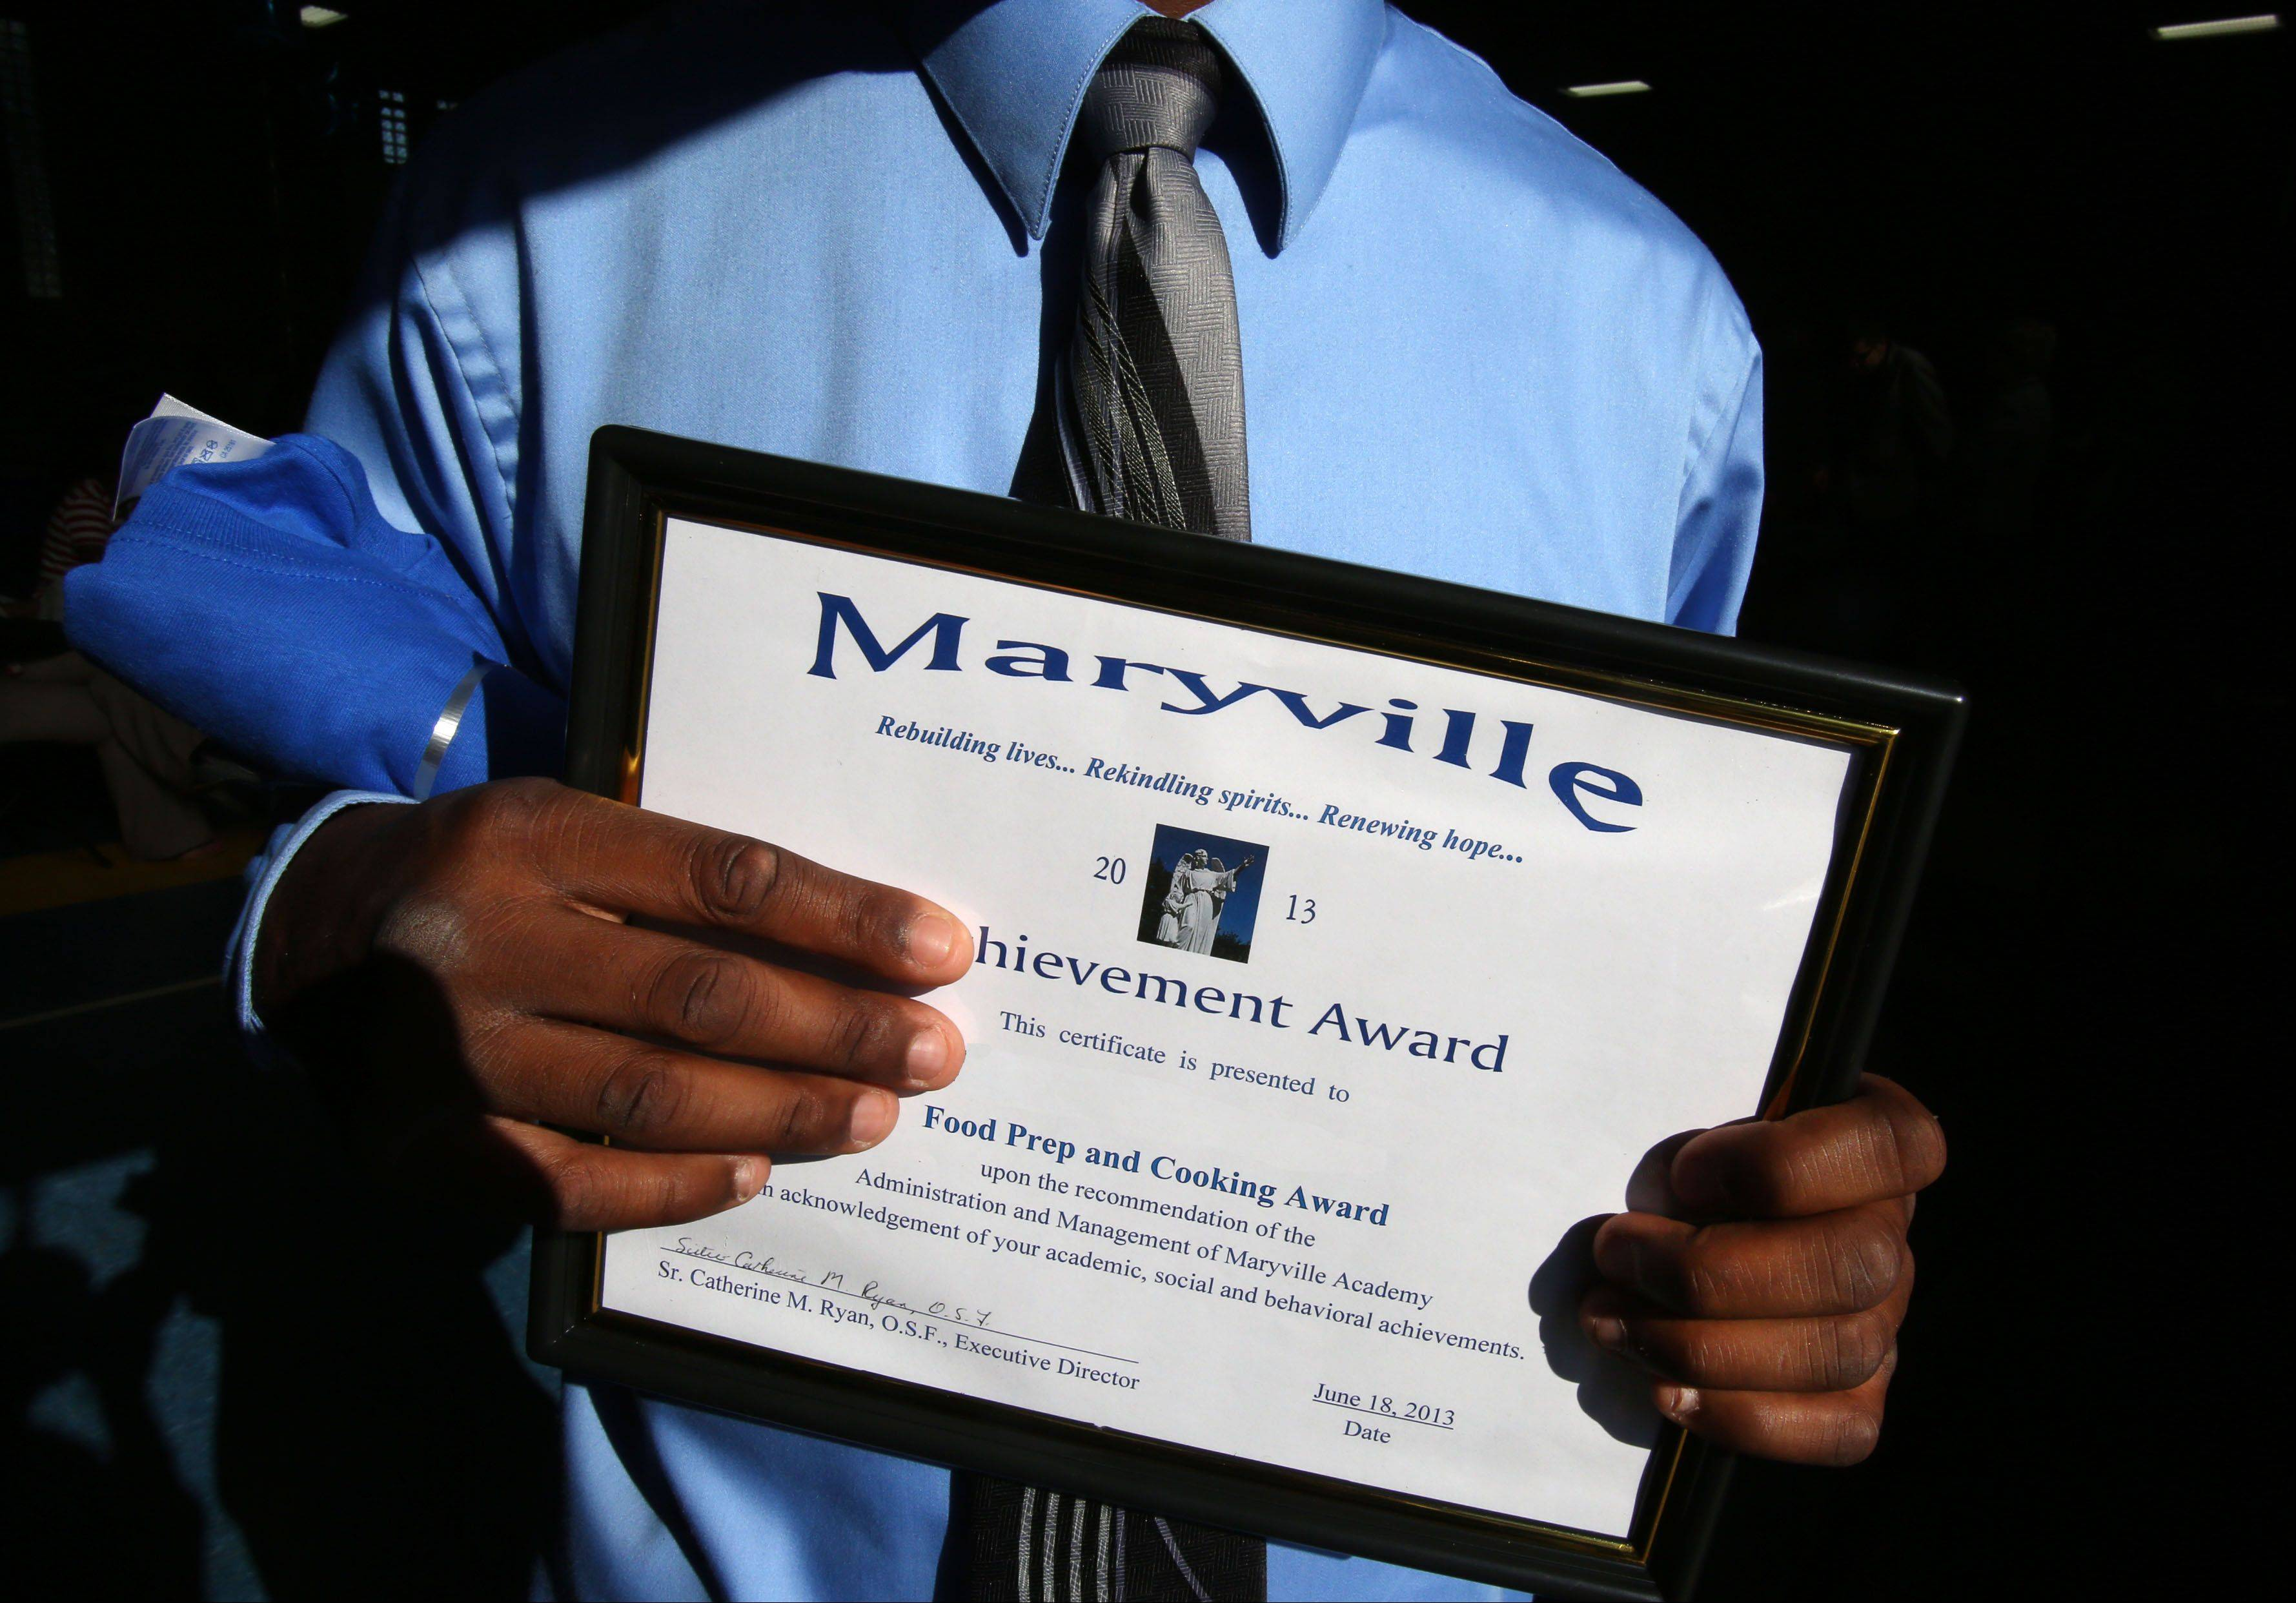 Awards such as this one for excellence in food preparation and cooking could be the first positive acknowledgment in the lives of abused and neglected children. That's why staff members say Maryville Academy's annual awards banquet is the best night of the year.